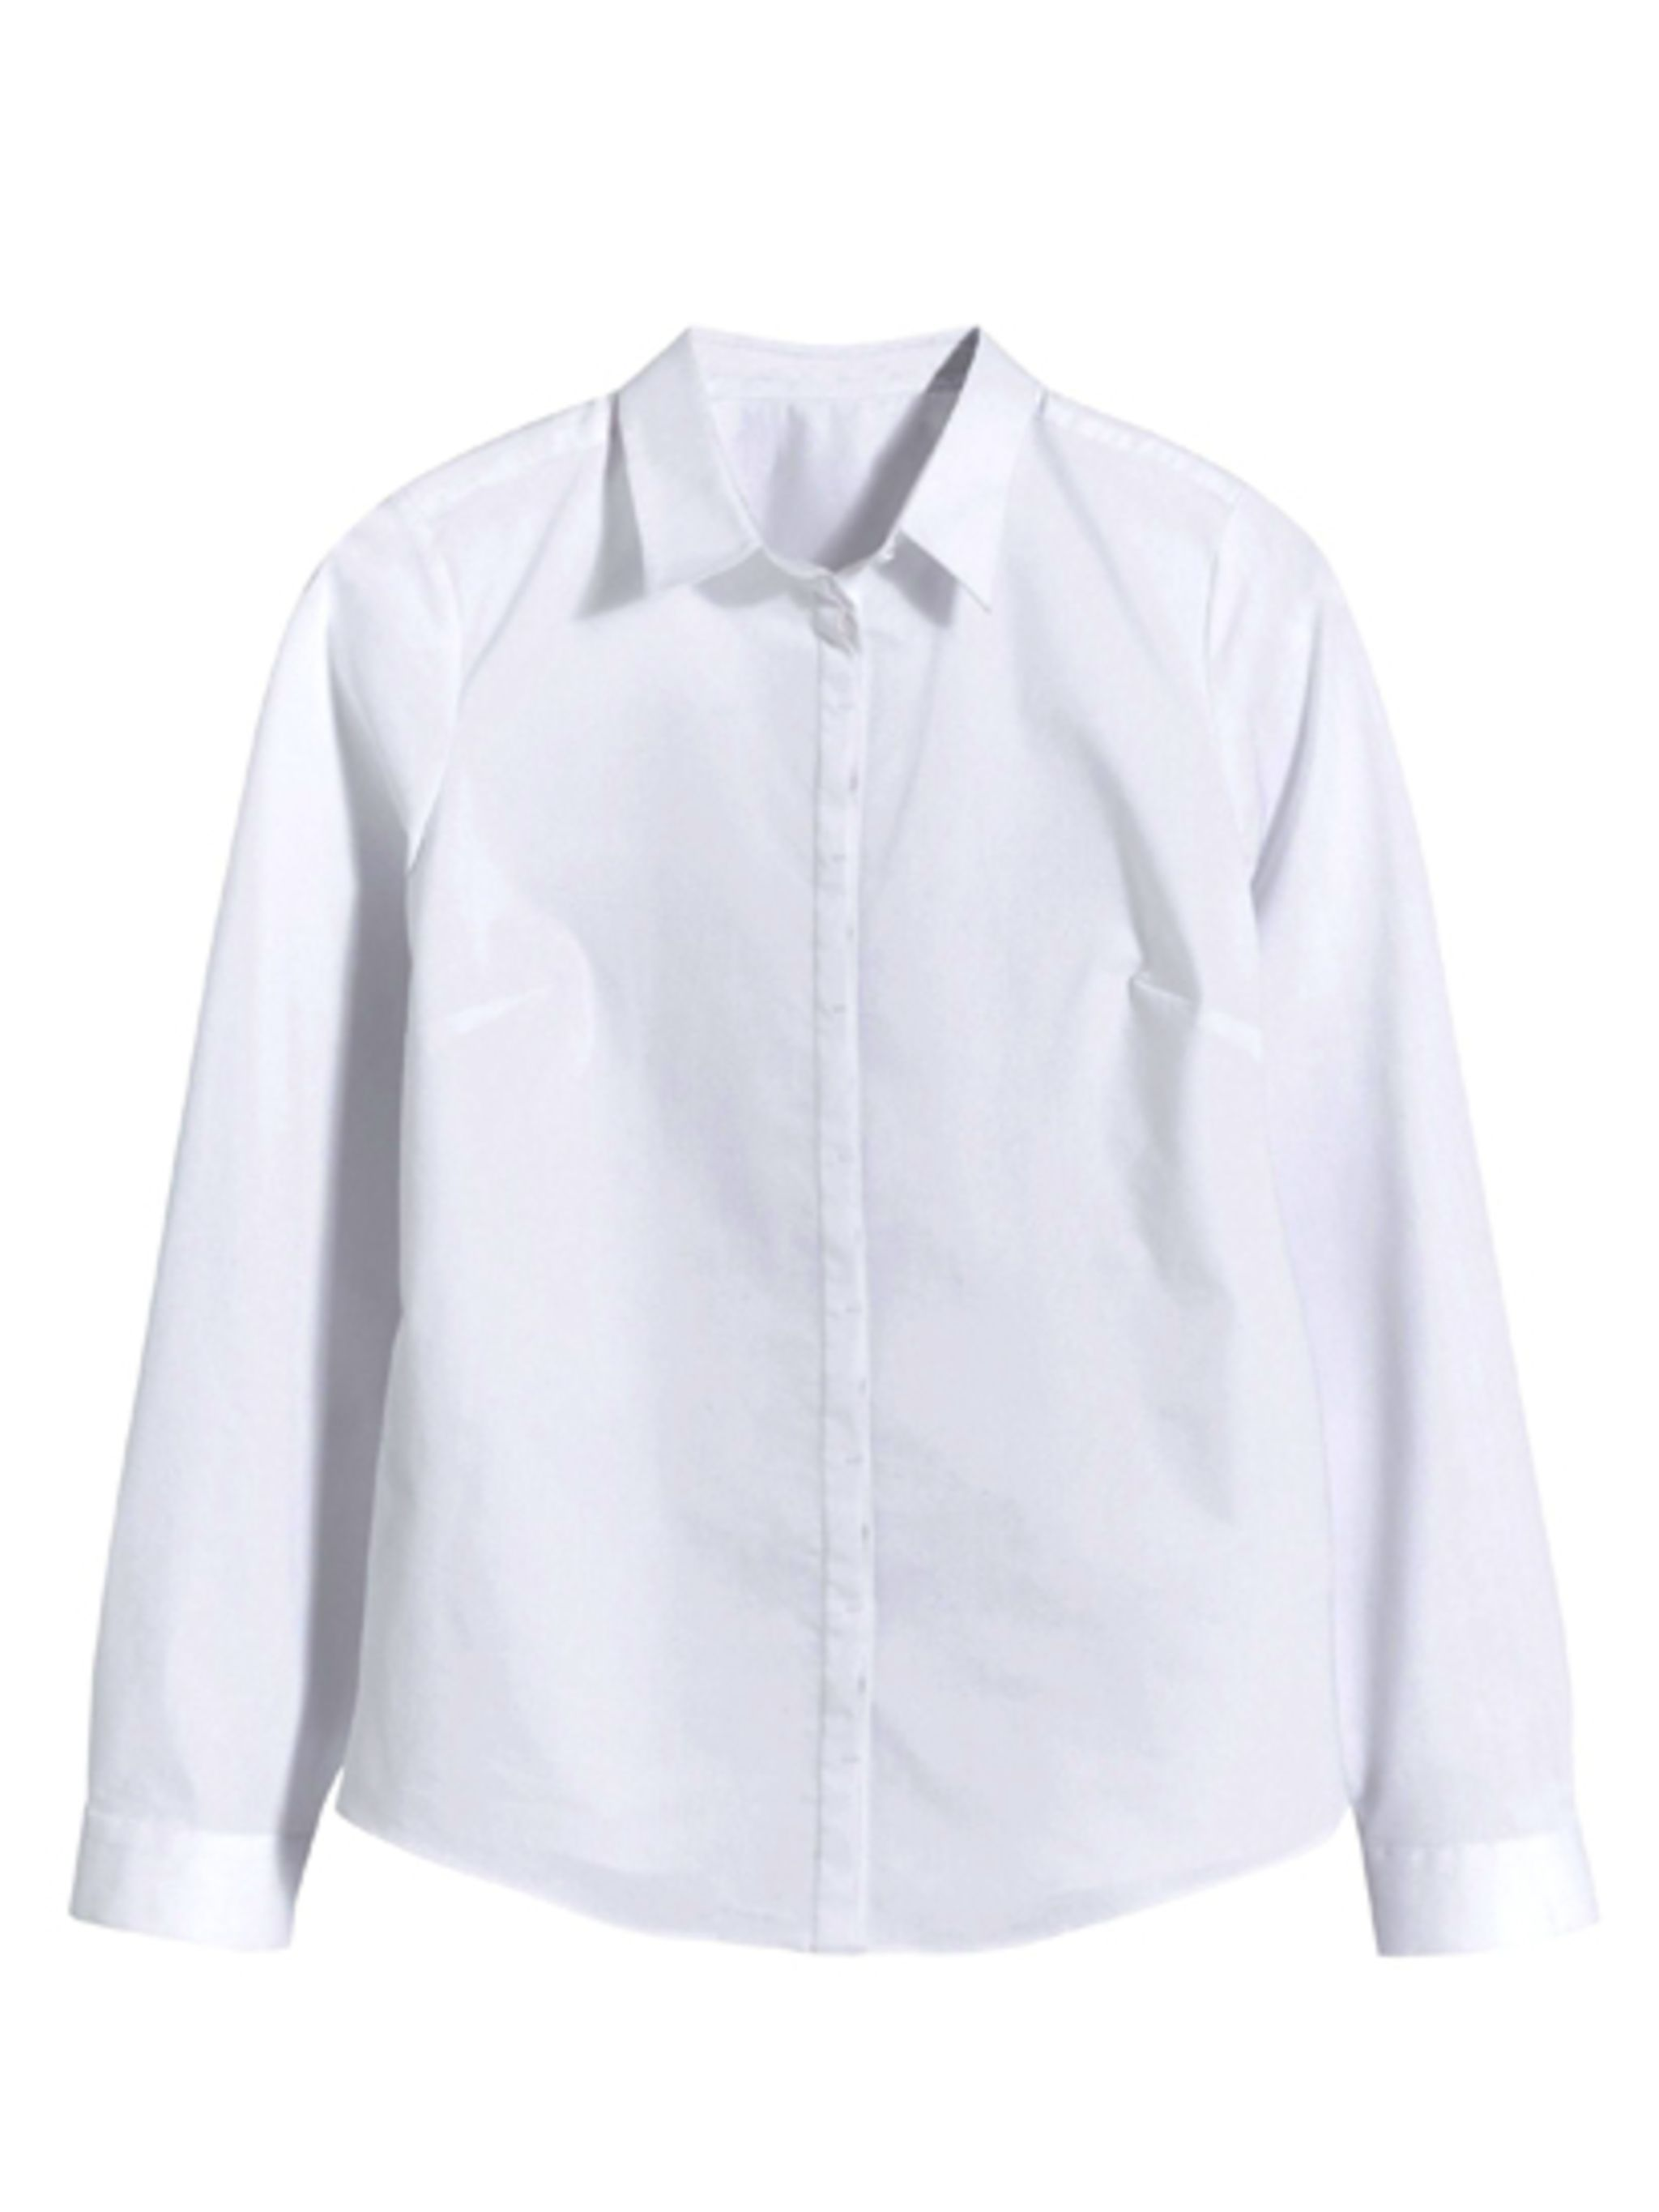 "<p>Starting with the signature classic white shirt, £20 at <a href=""http://www.next.co.uk/x5458s2#675571x54"">Next</a>.</p>"